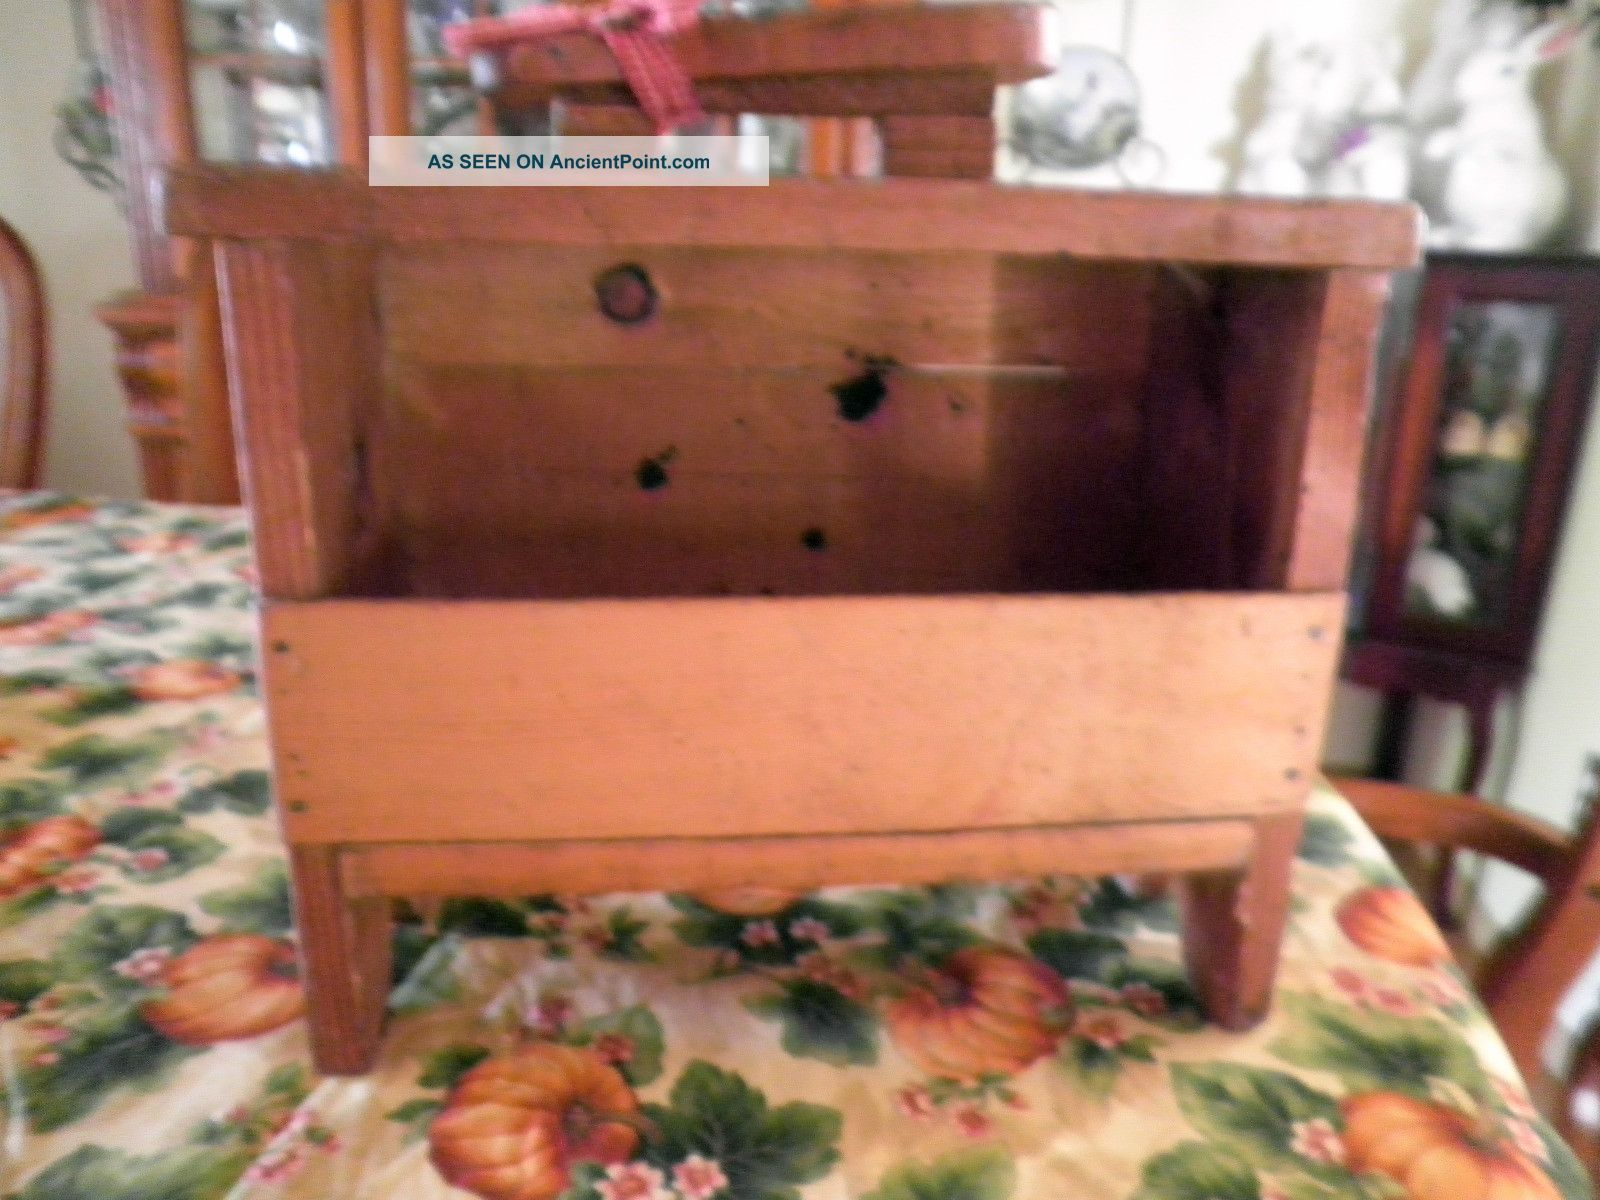 Antique Old Primitive Wood Shoe Shine Polish Box Stand Shaker Colonial Style 1900-1950 photo